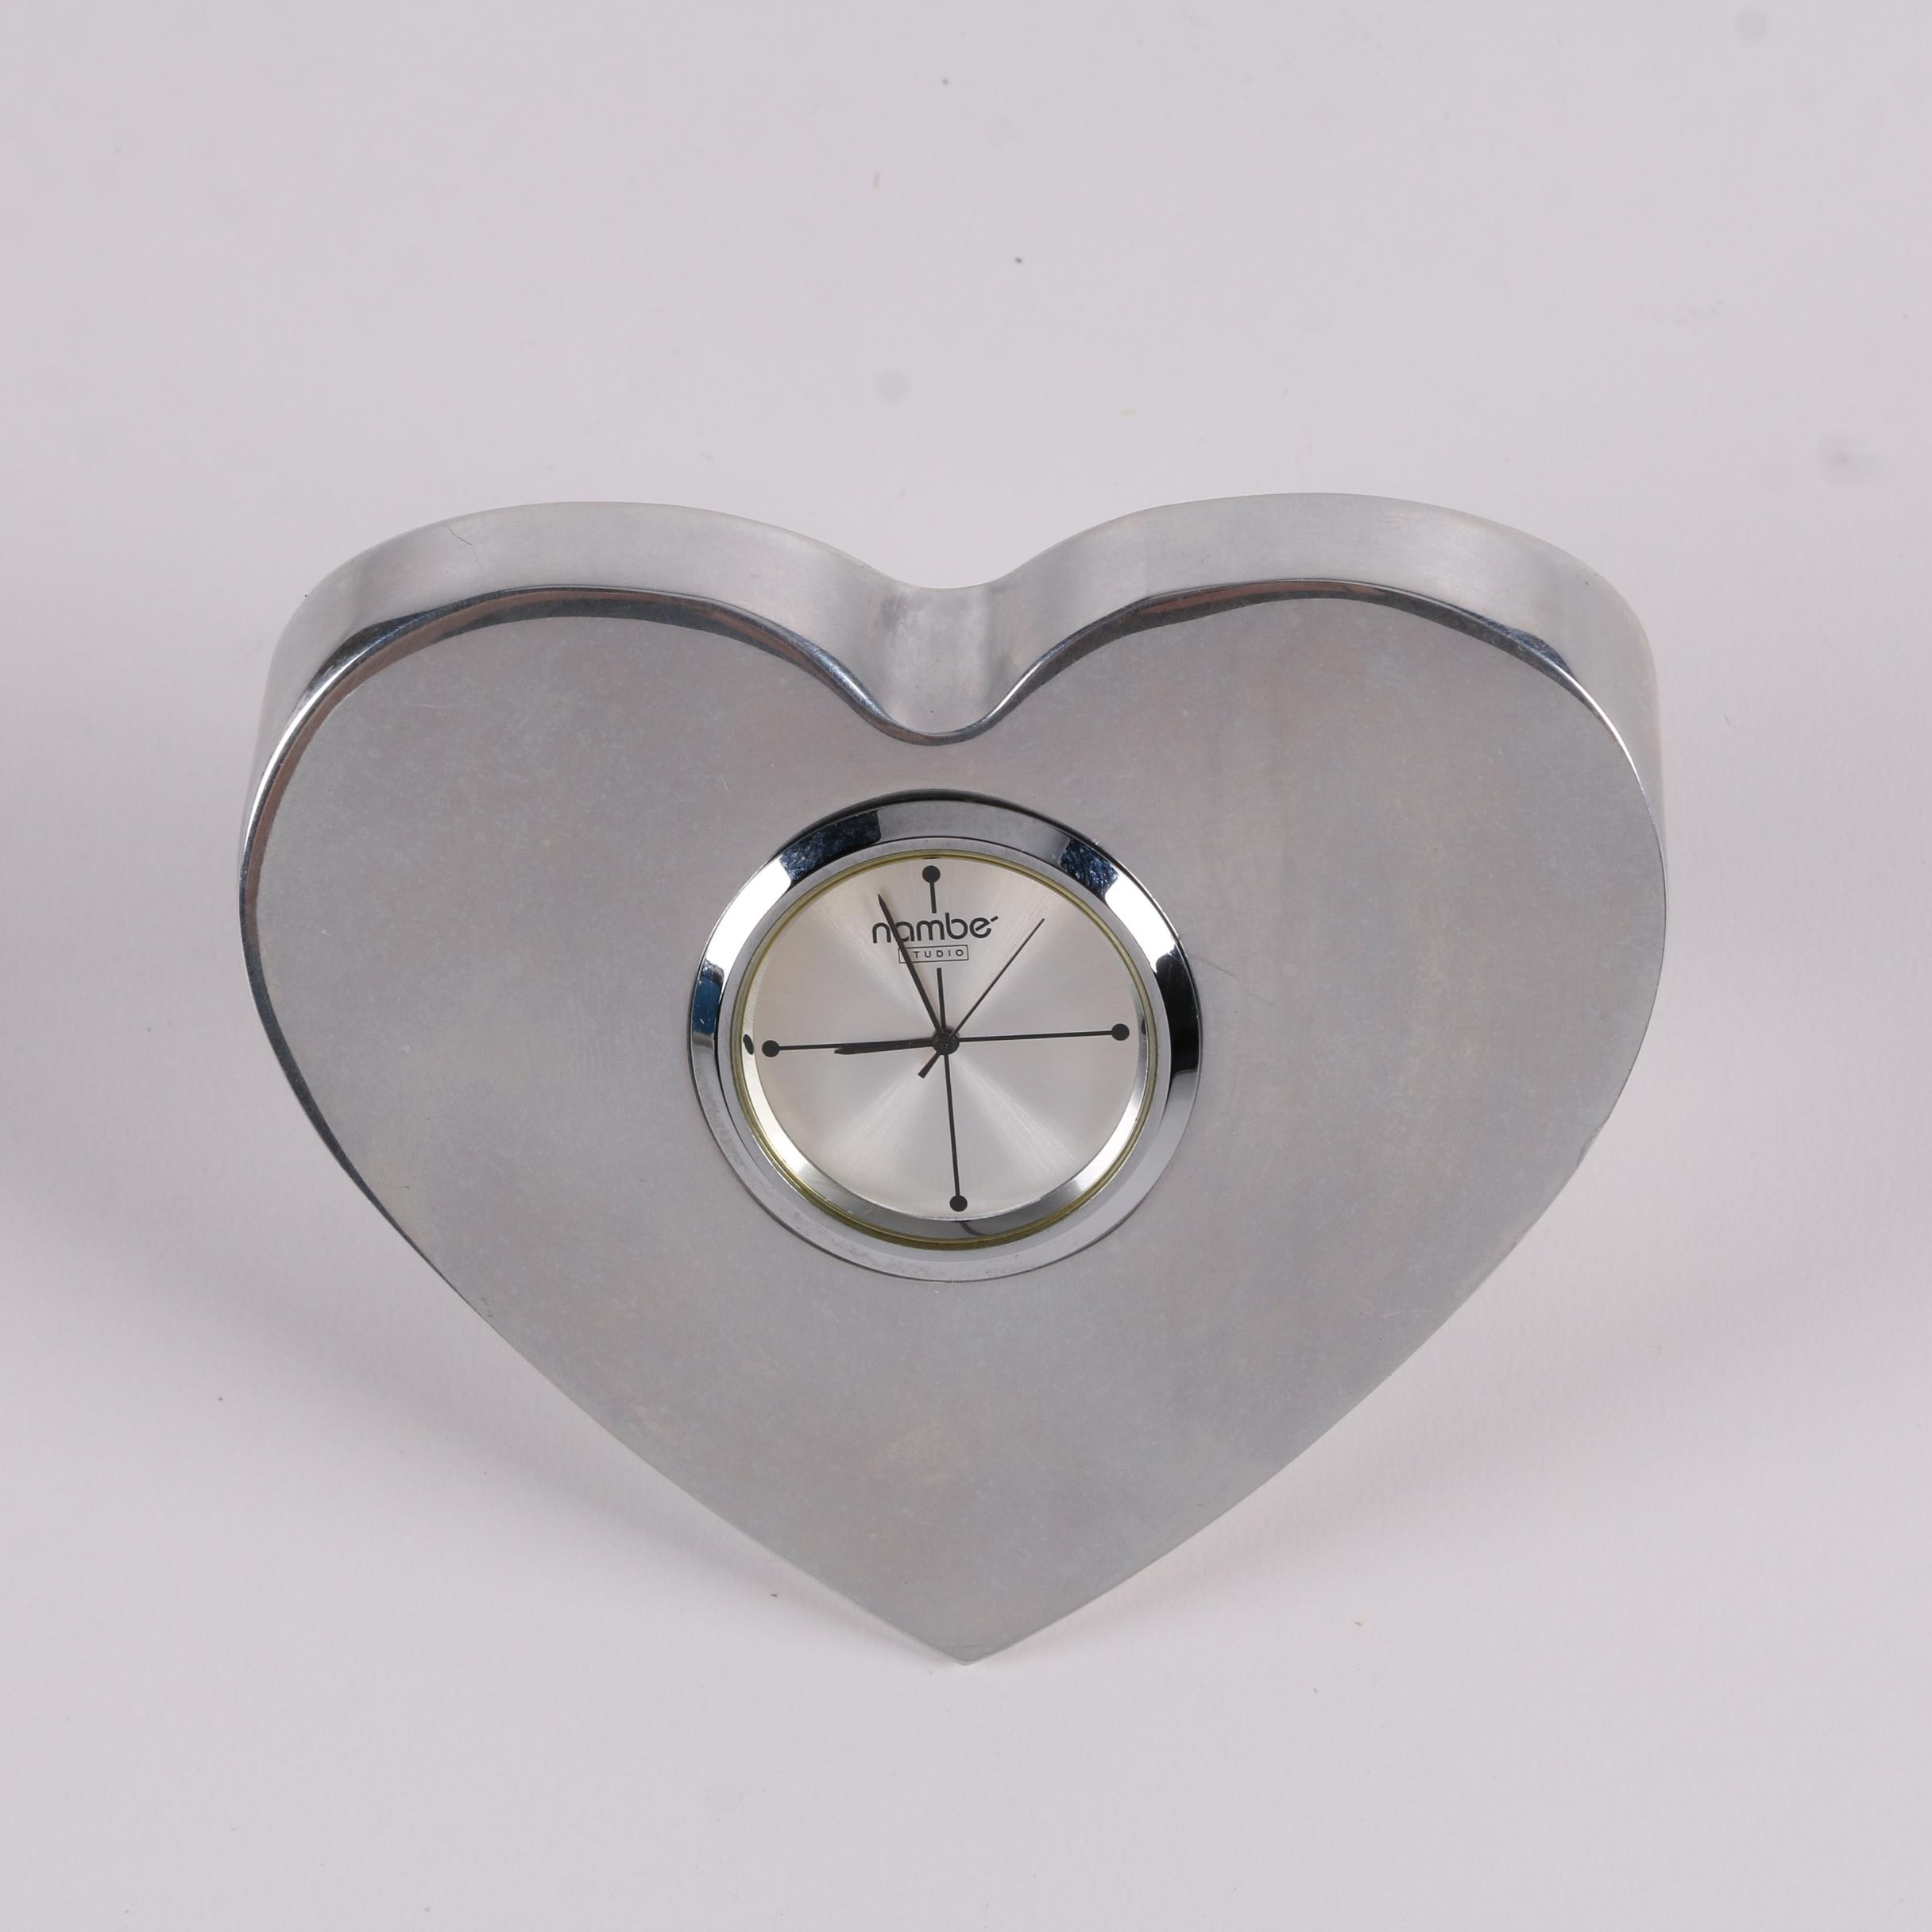 1998 Nambé Studio Heart Shaped Desk Clock